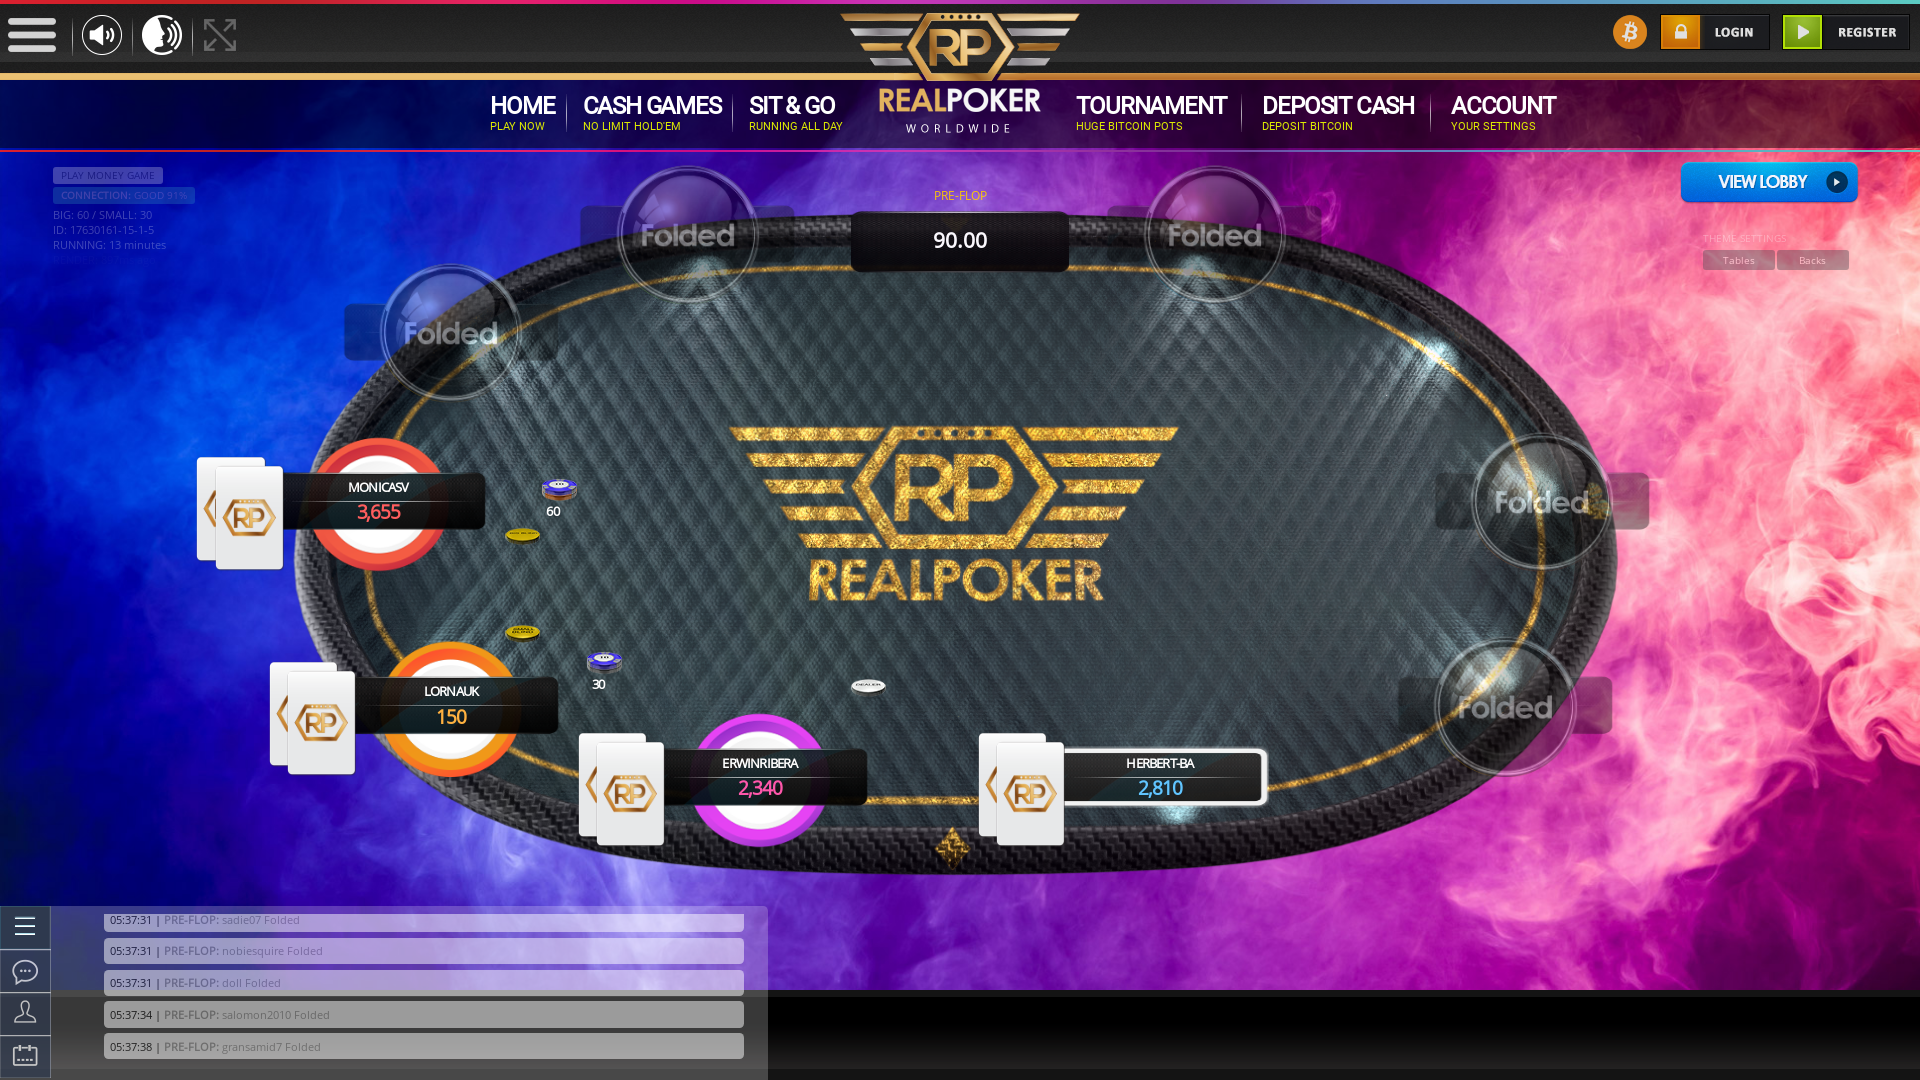 Cambodia Casino Bitcoin Poker